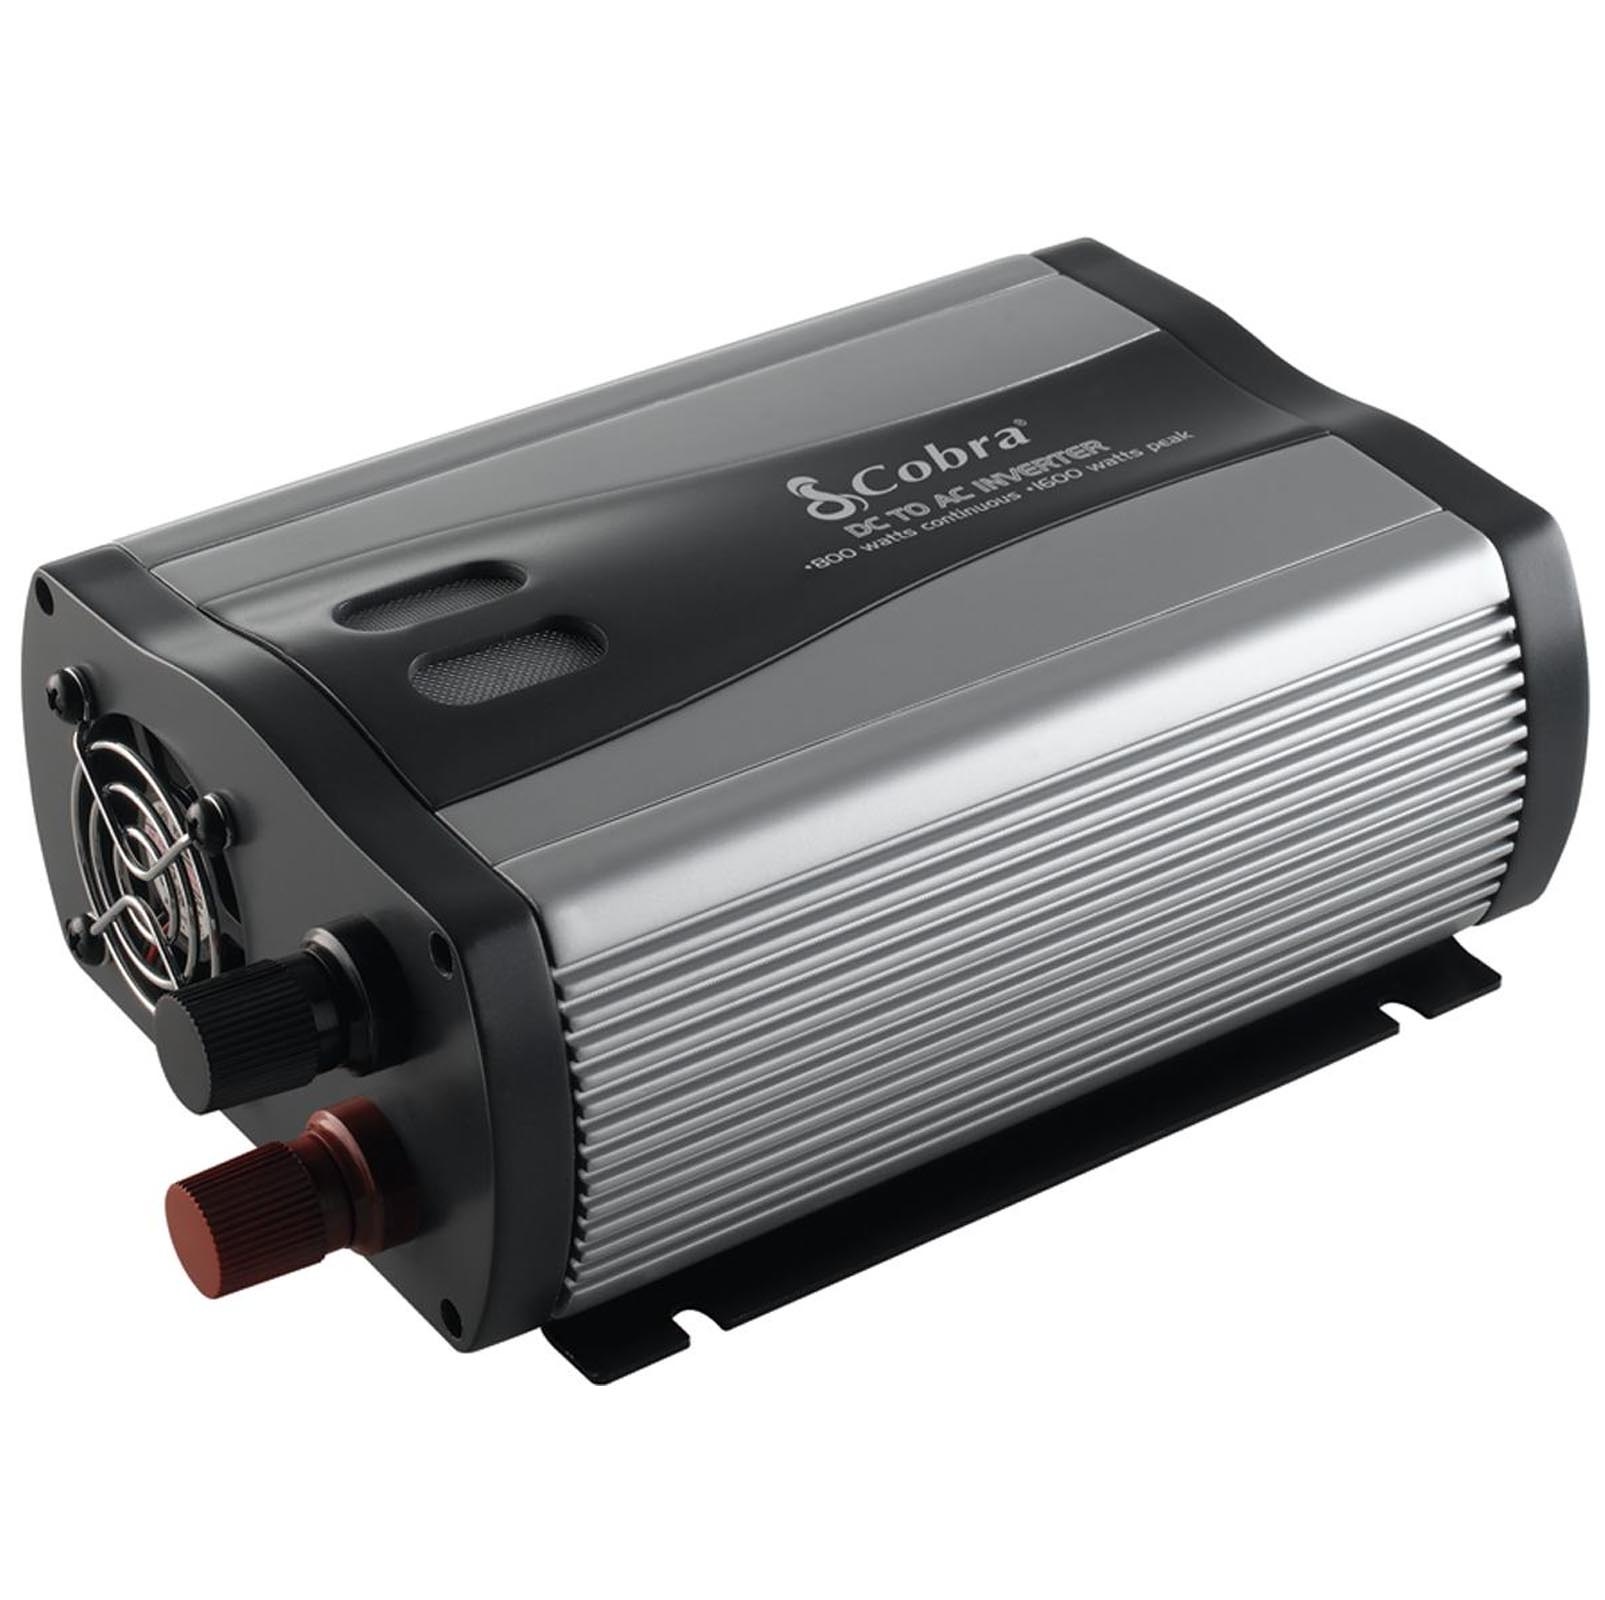 Refurb COBRA CPI880 Compact 800 WATT DC to AC 120V Car Power Inverter w/USB Port [Refurbished]